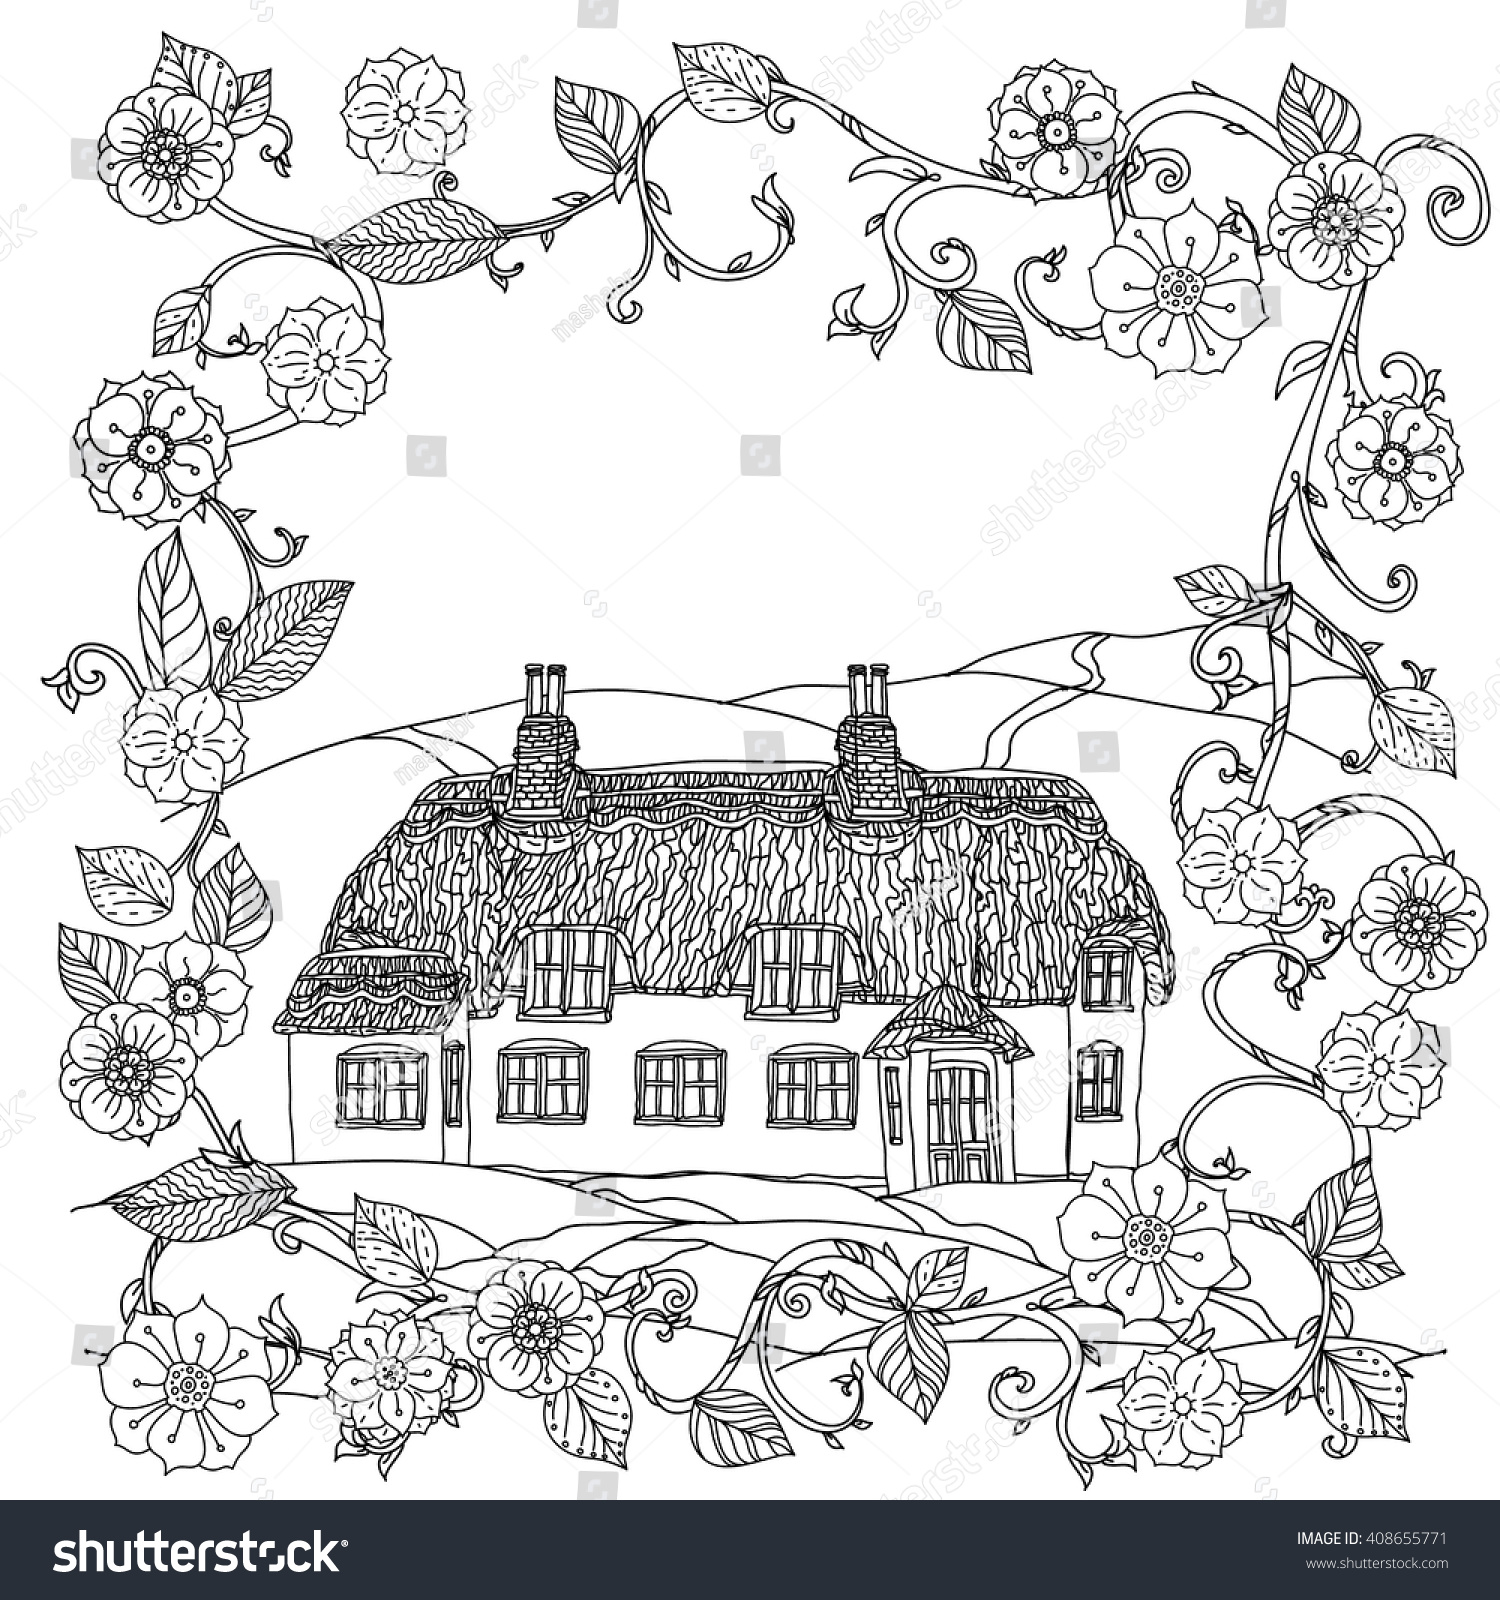 Black And White Flowers Victorian House For Adult Coloring Book Zen Art Style